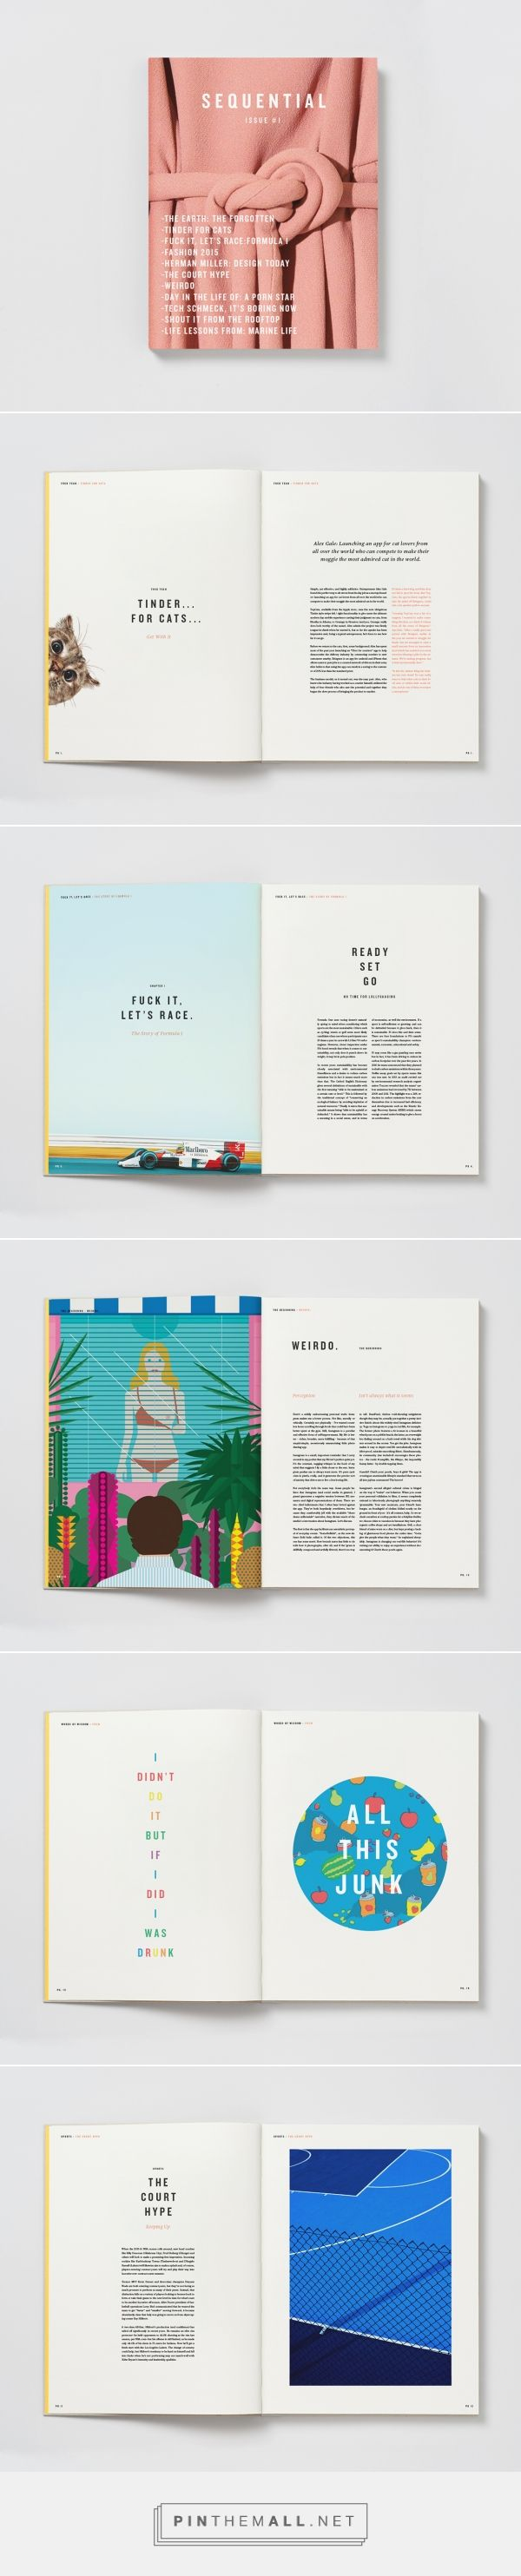 Sequential Magazine Concept Design by Brandon Nickerson - The Design Blog